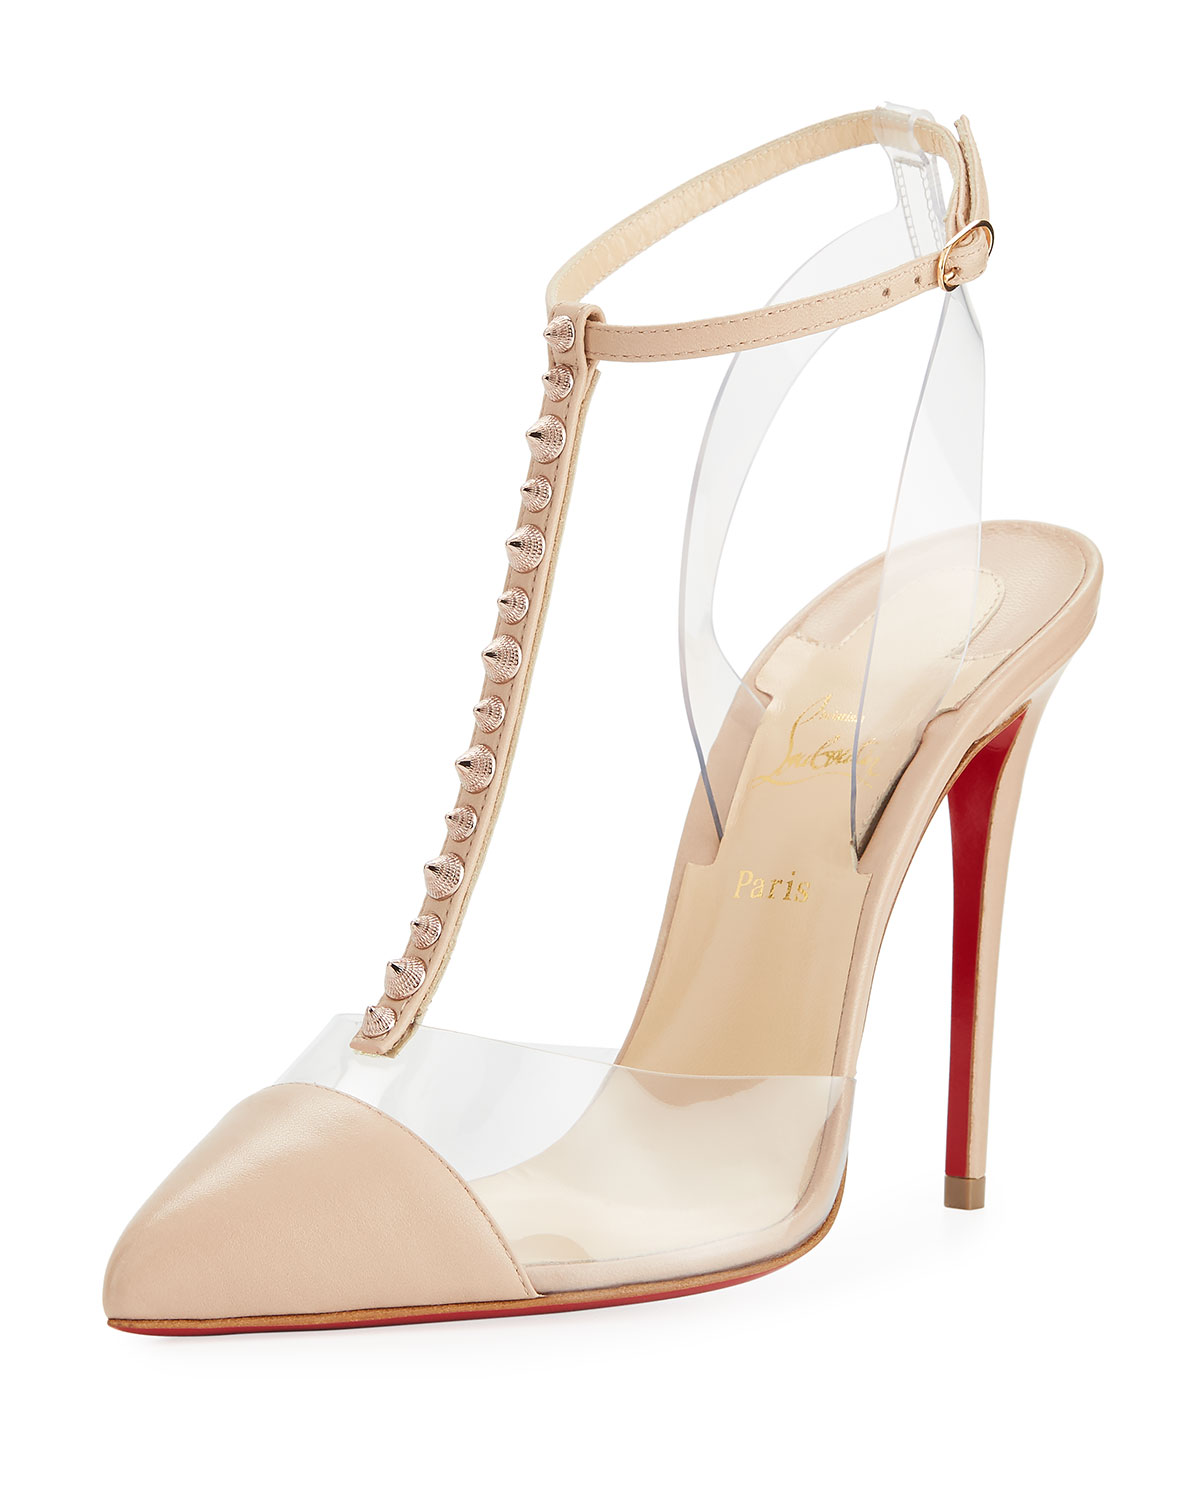 081dab41094a Christian Louboutin Nosy Spikes Illusion Red Sole Pump